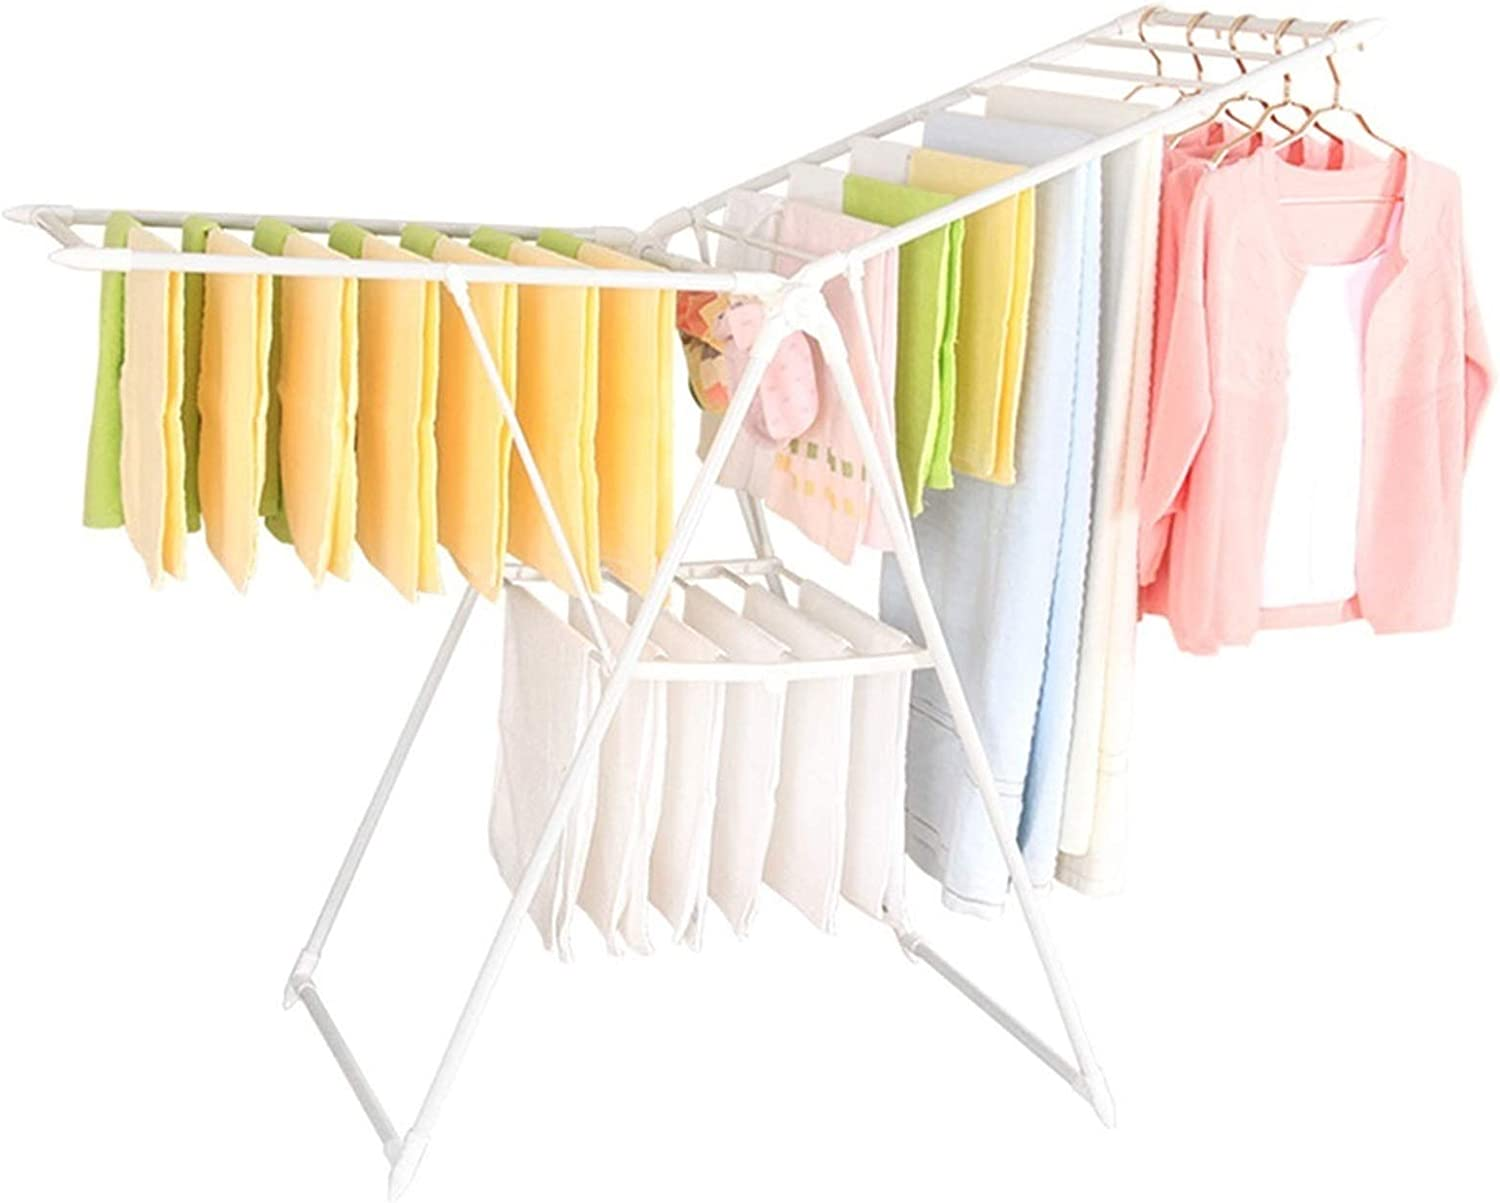 XIAOQIU discount Clothes Drying Rack Airer Laundry Stainless Raleigh Mall for